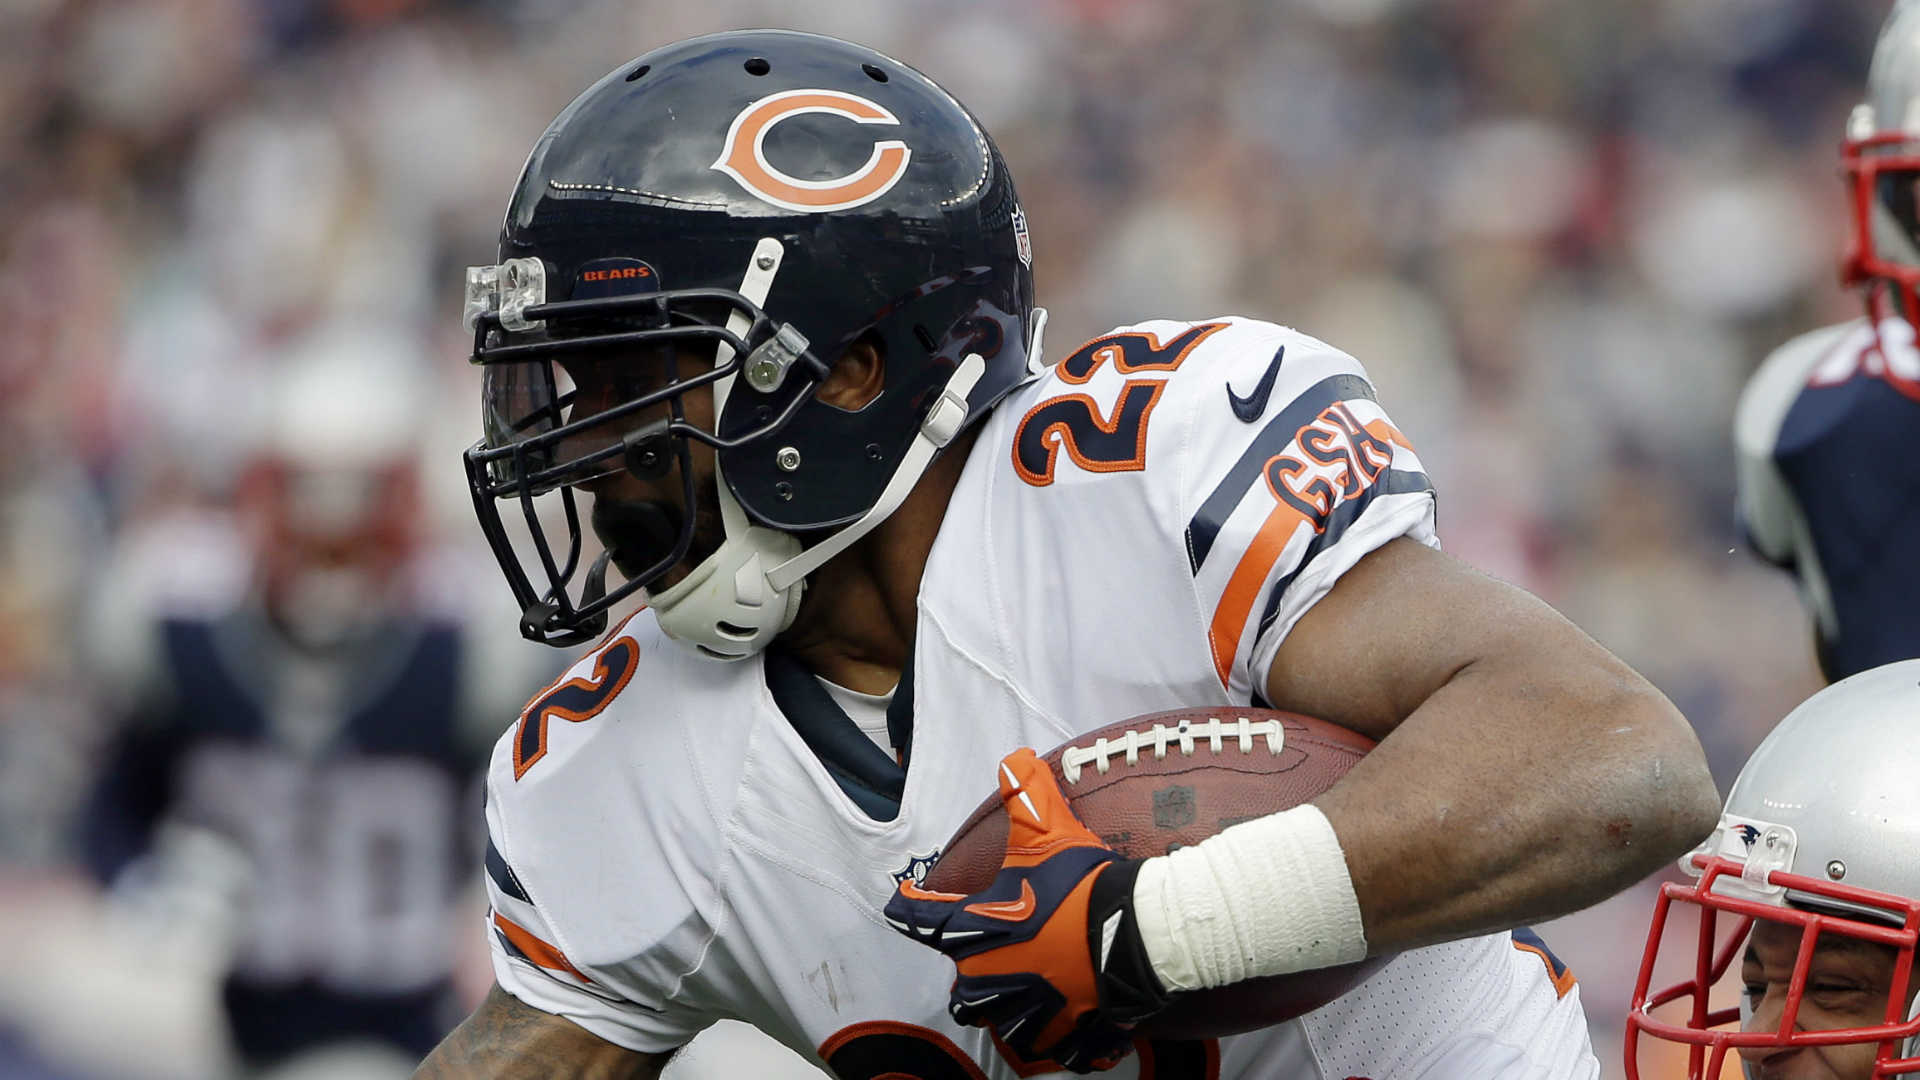 Projecting Bears' depth chart: Cutler, Forte, Jeffery behind Chicago overhaul